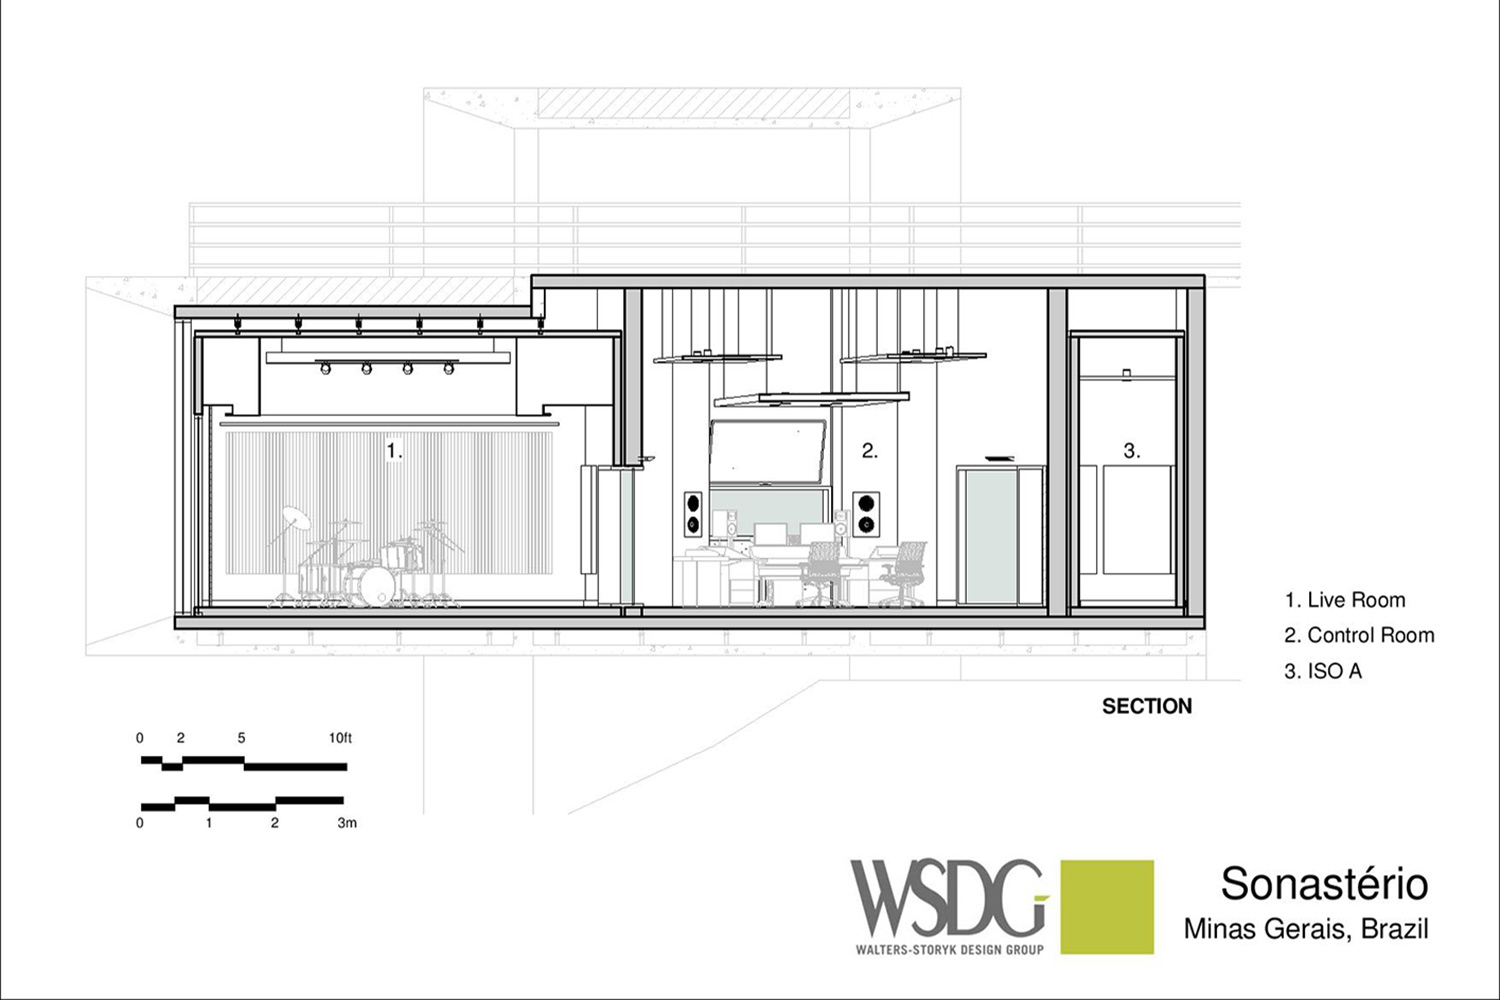 Sonastério Studios is a work of art in itself. More than just a studio, it is a house of creation designed to enhance the natural expressiveness of each artist. A collaboration of João Diniz Arquitetura office and WSDG, one of the world's leading acoustic architectural design firms. Presentation Drawing 1